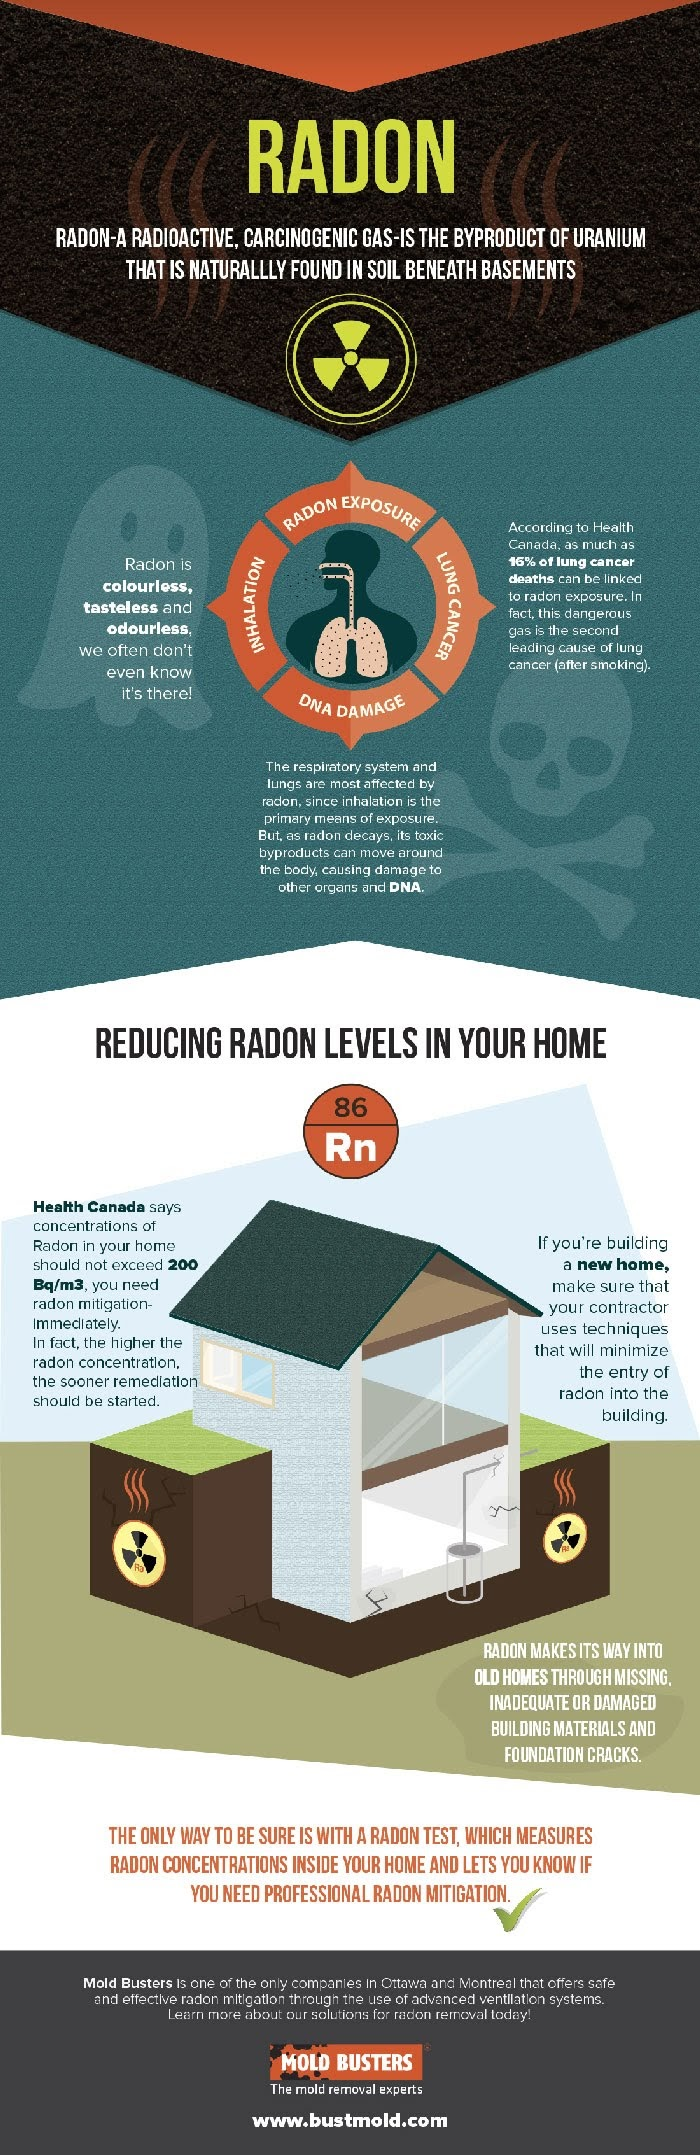 Radon Gas and How to Reduce Radon Levels in Your Home? #Infographic